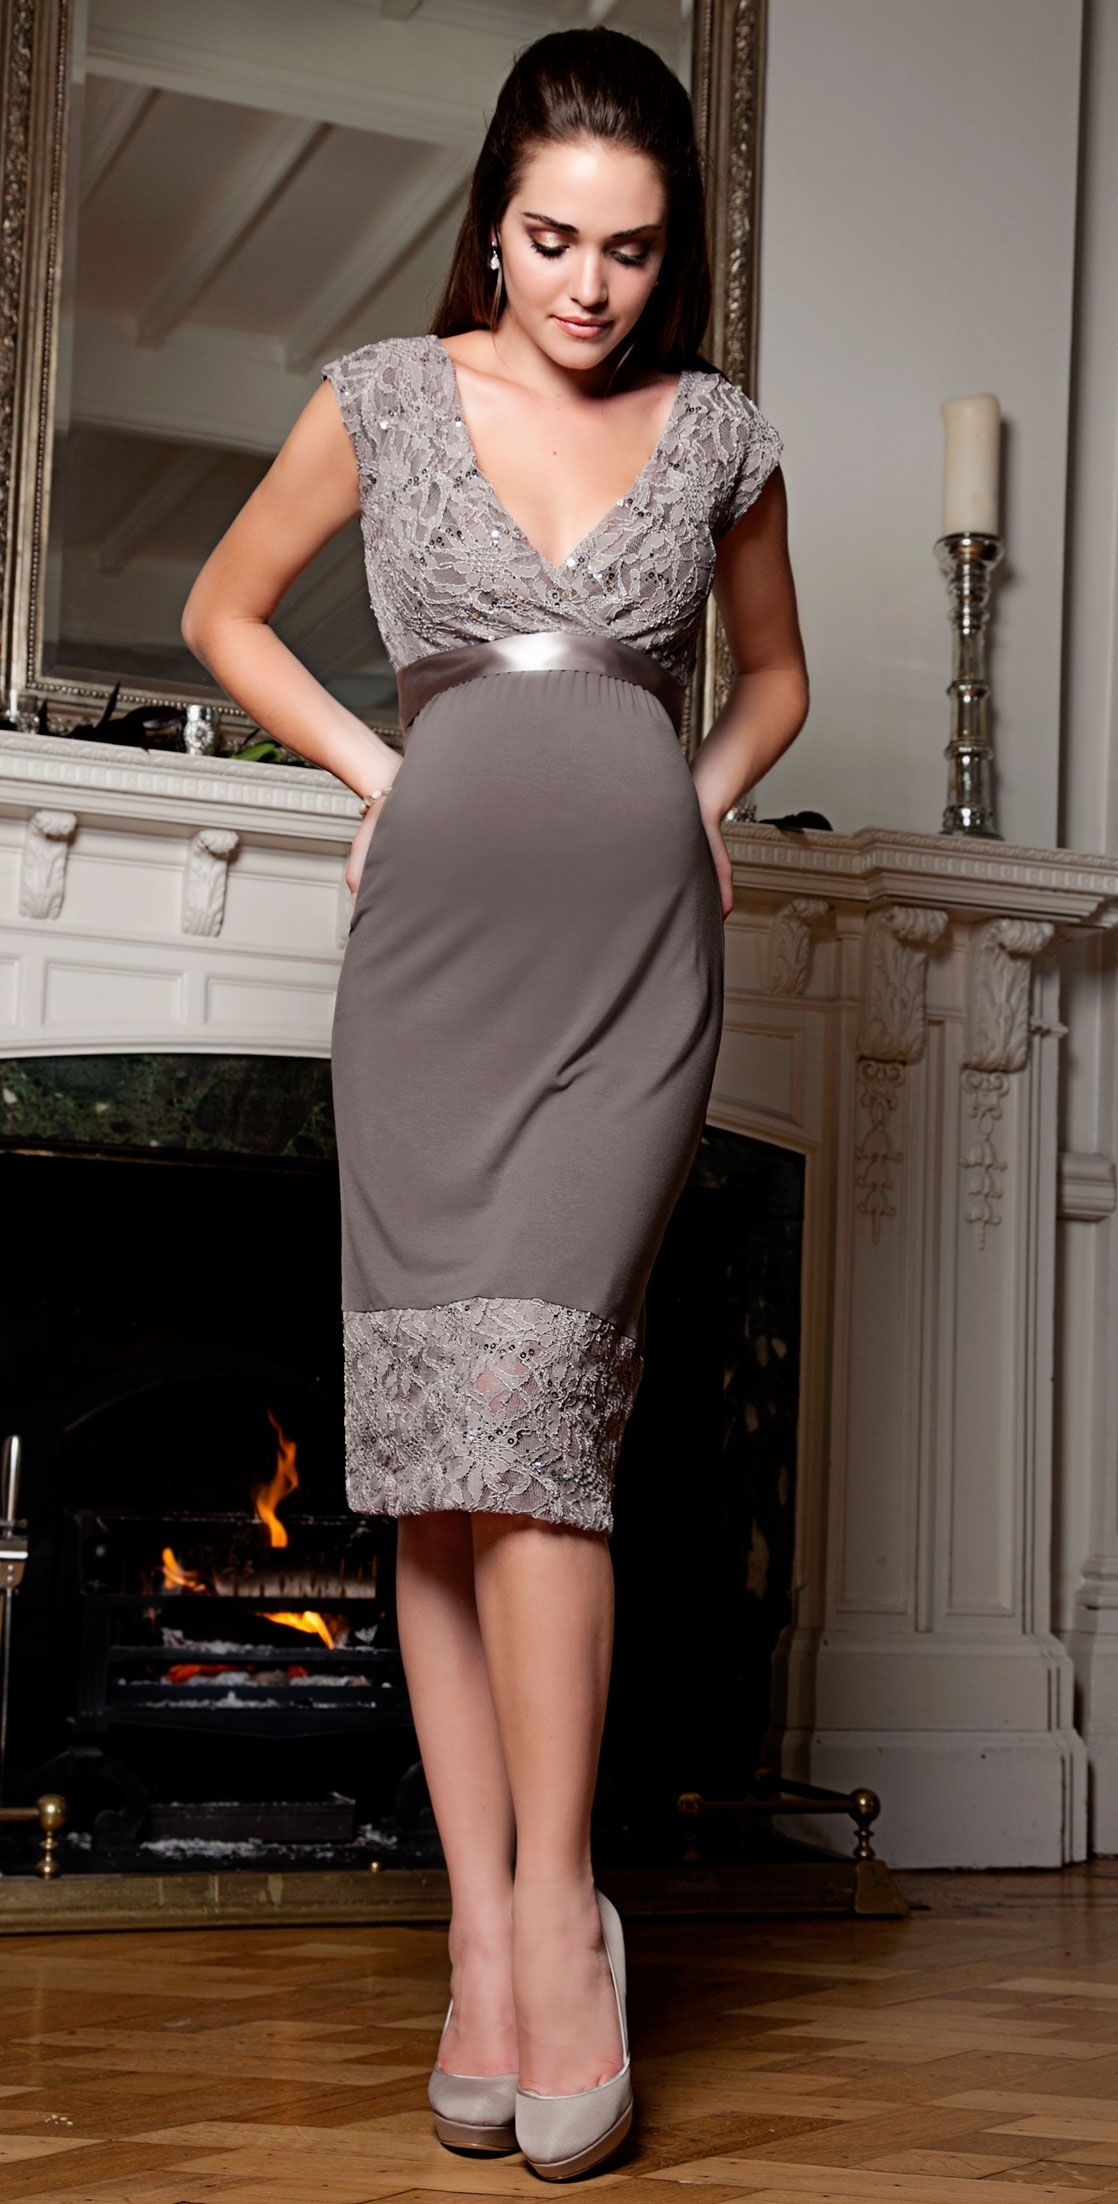 maternity dresses for weddings Twilight Lace Dress Maternity Wedding DressesMaternity